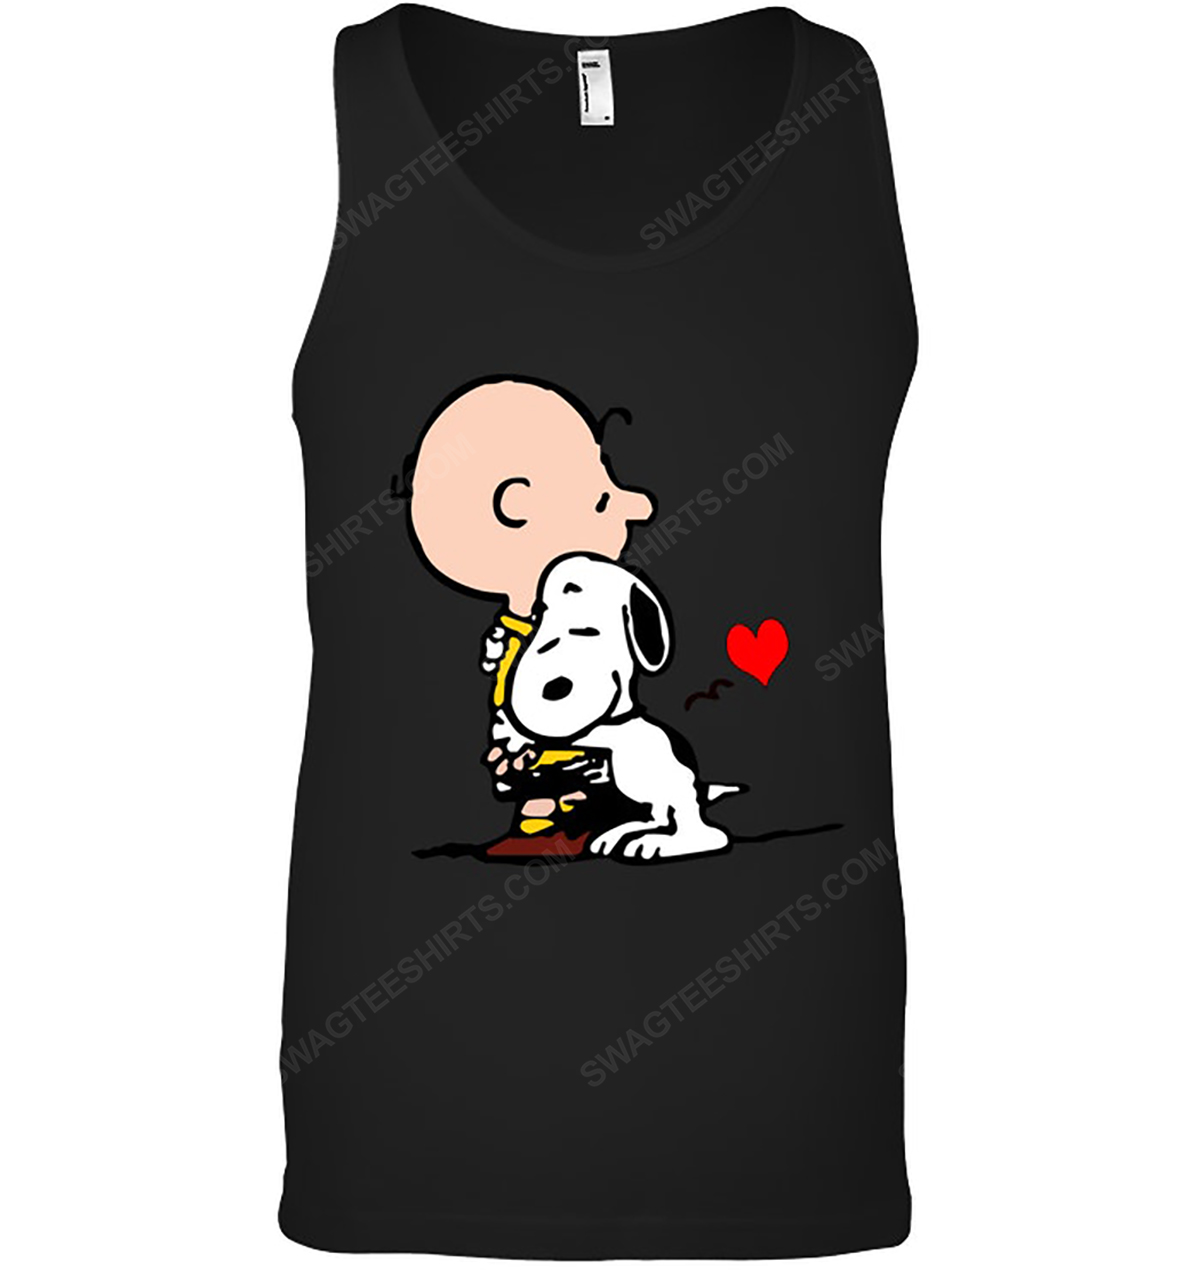 The peanuts snoopy and charlie brown love tank top 1